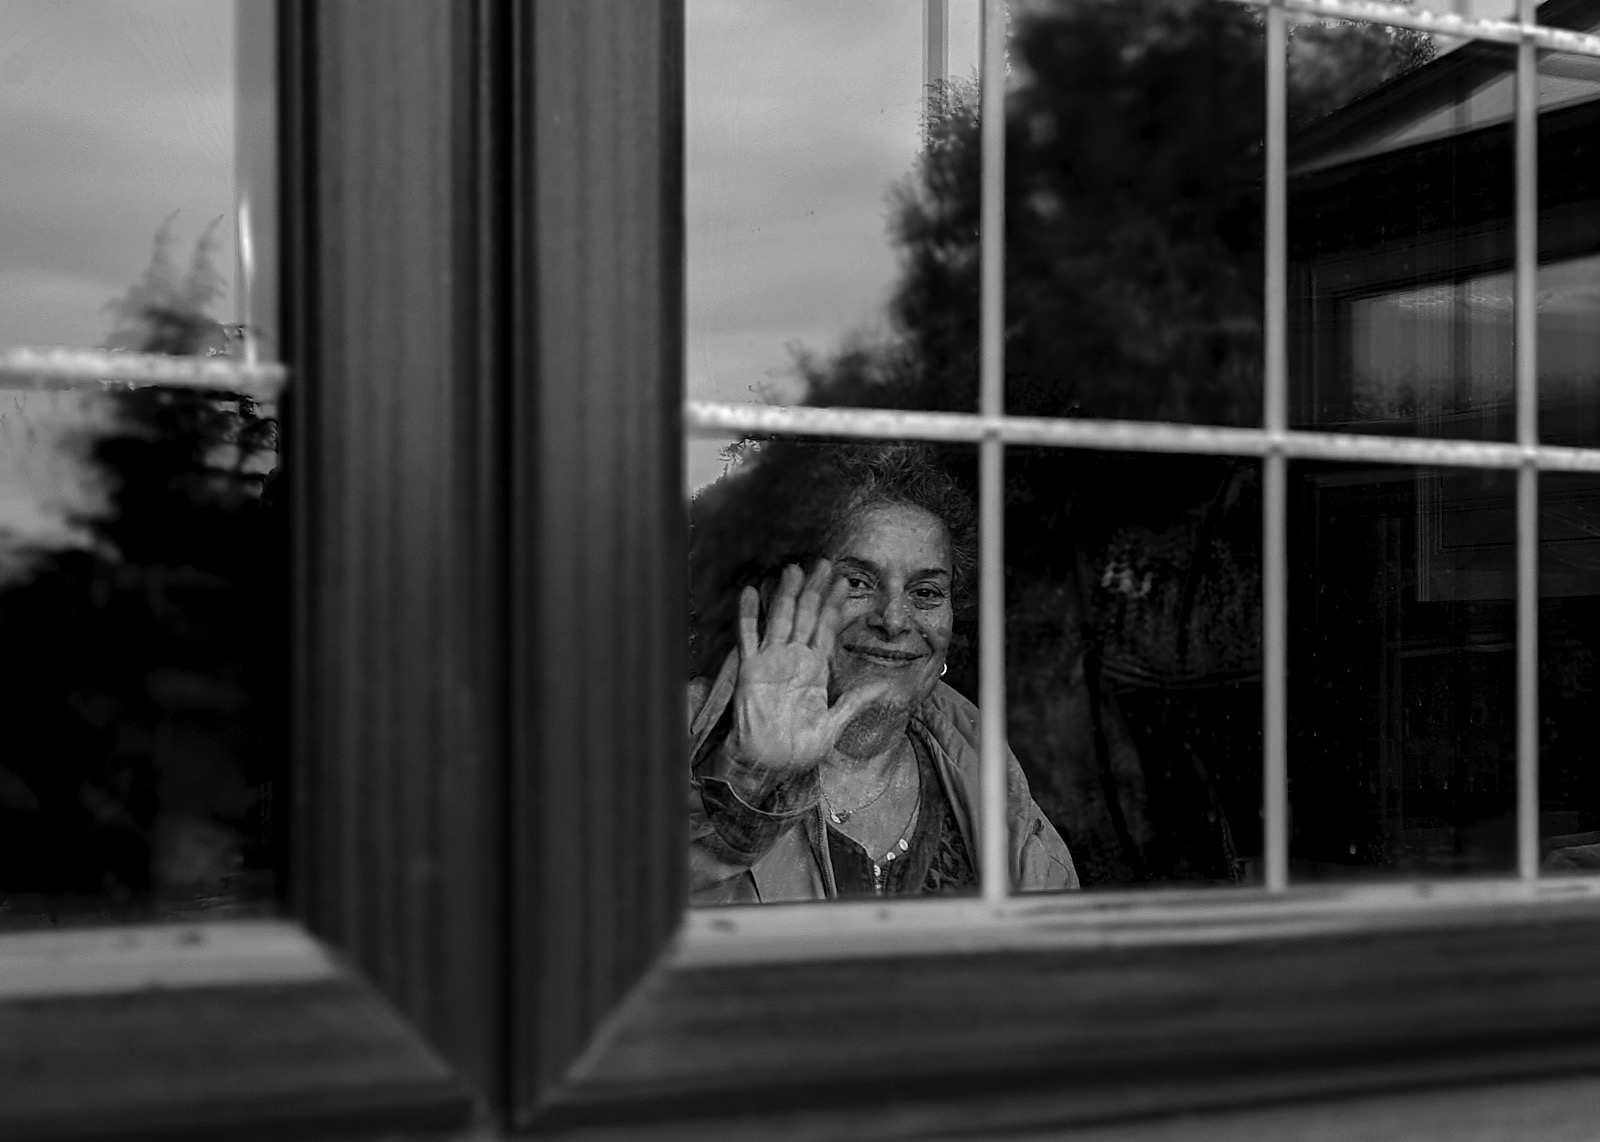 Image of woman smiling placing her hand against glass window during Covid-19 pandemic